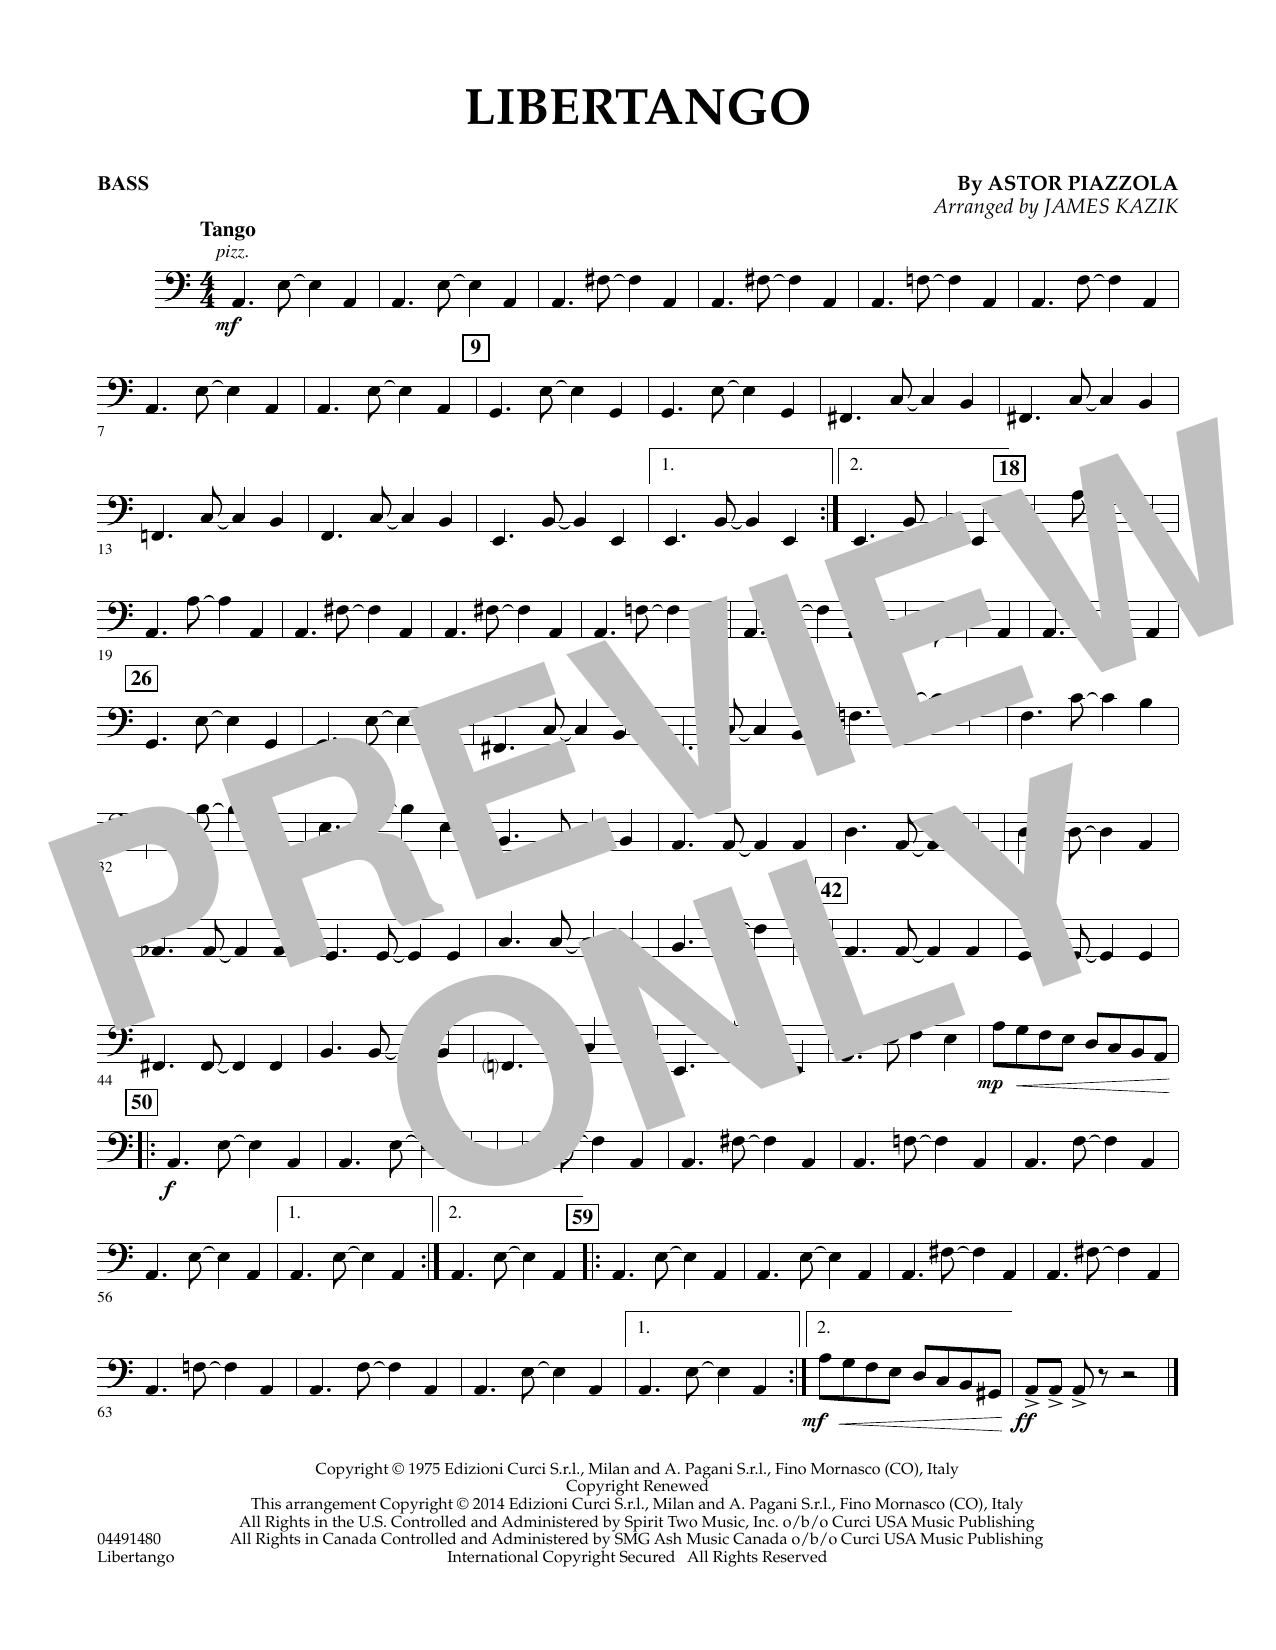 James Kazik Libertango - Bass sheet music preview music notes and score for Orchestra including 1 page(s)